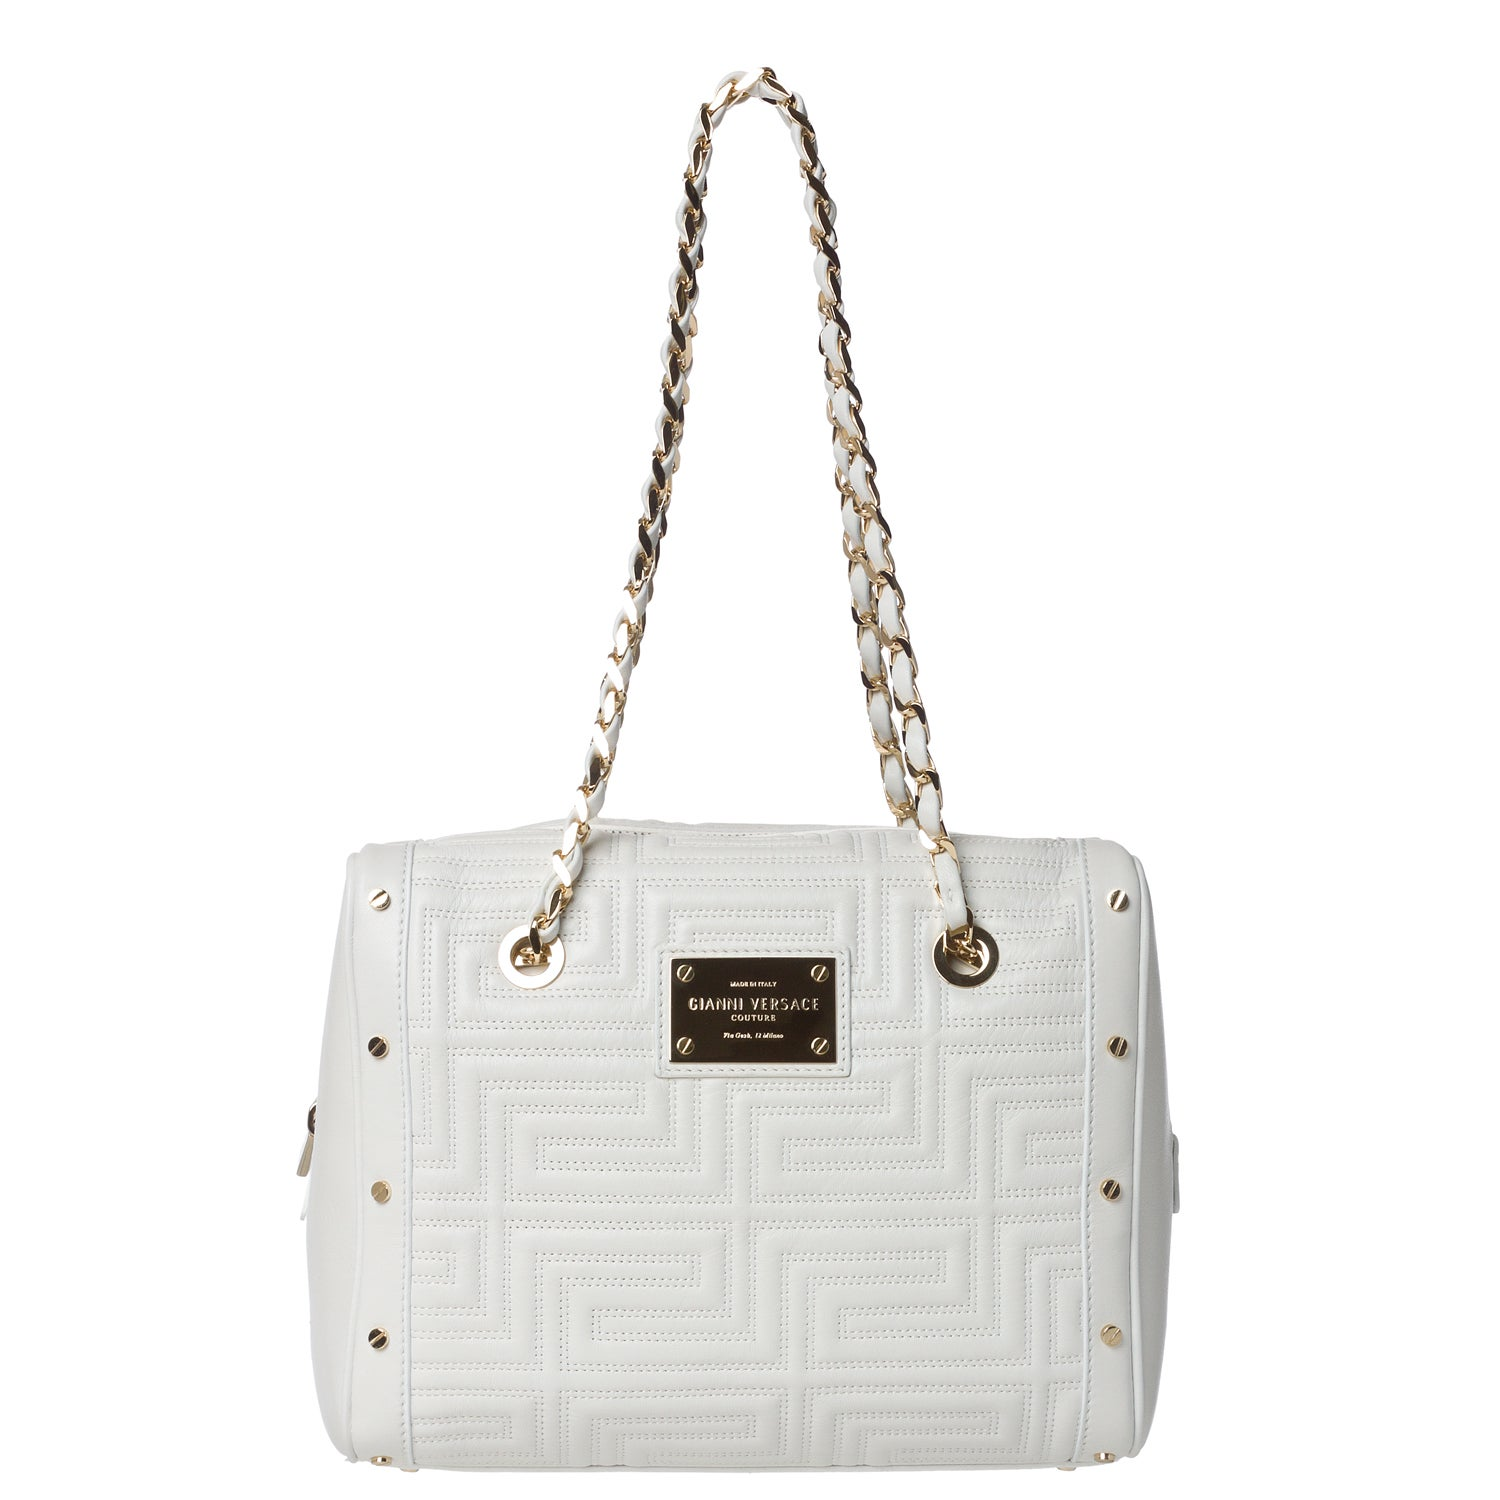 Versace Stitched White Leather Shoulder Bag with Woven Chain Strap